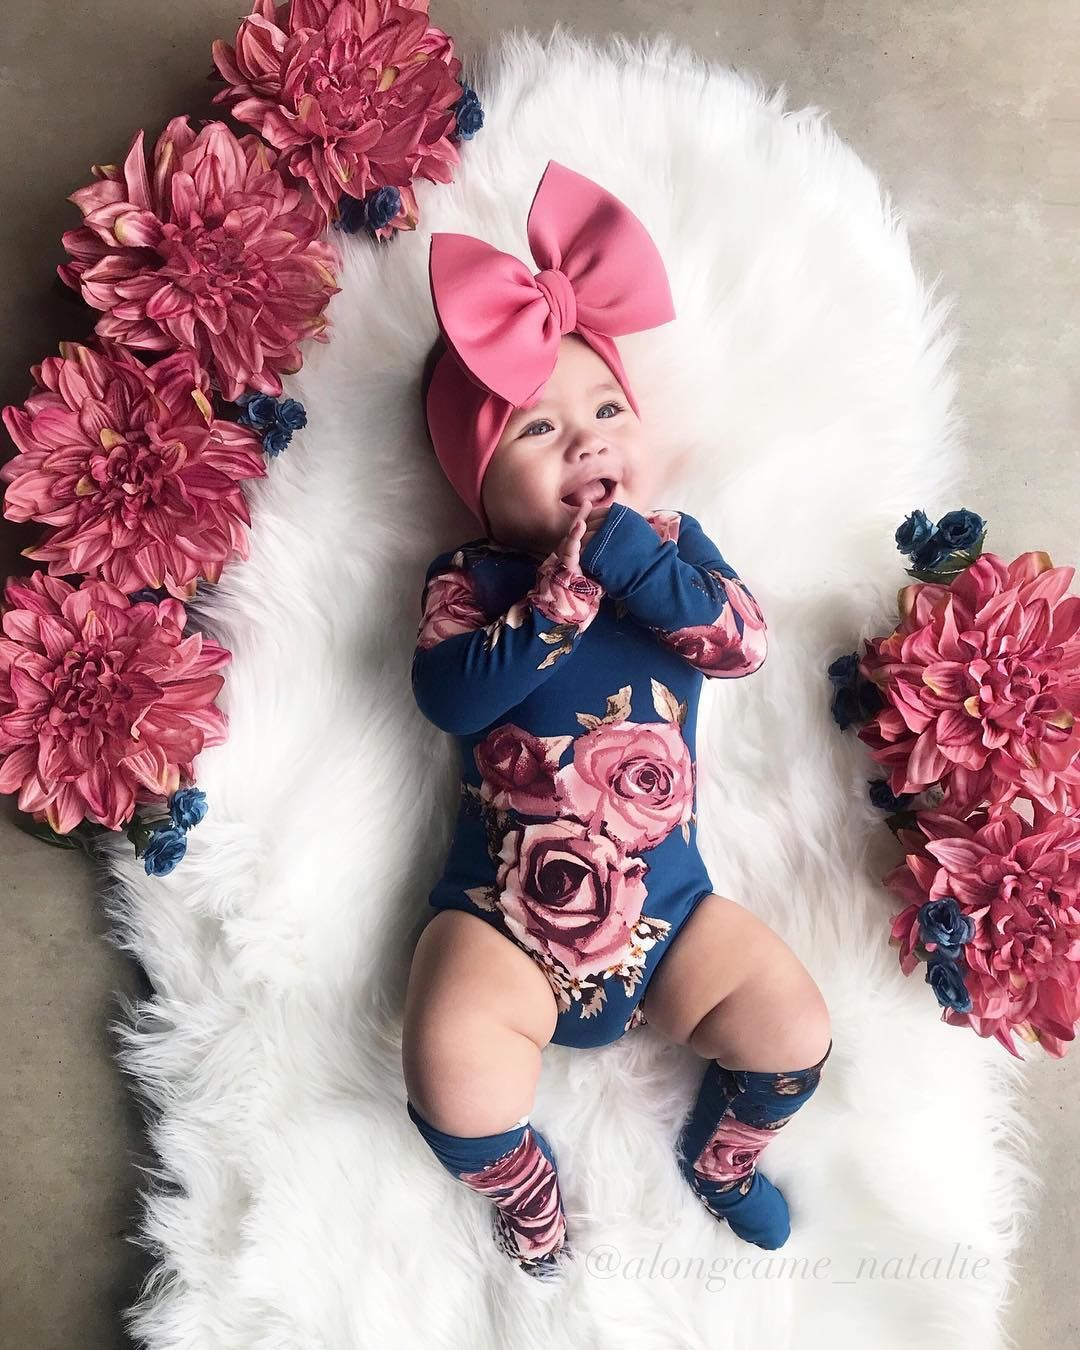 cute baby girls, bows, flowers, pink, cute baby outfits.  Cute